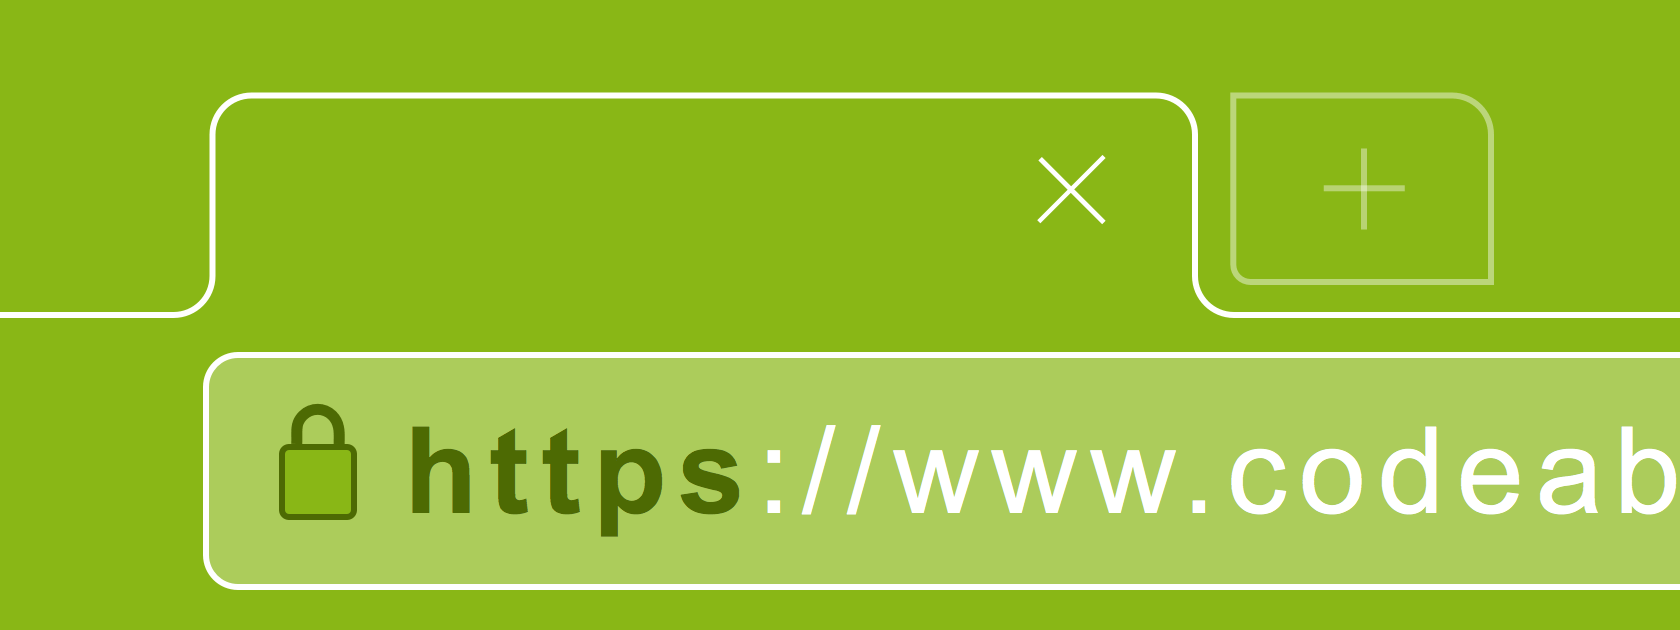 Ssl Certs How To Install Ssl Multi Domain On Centos